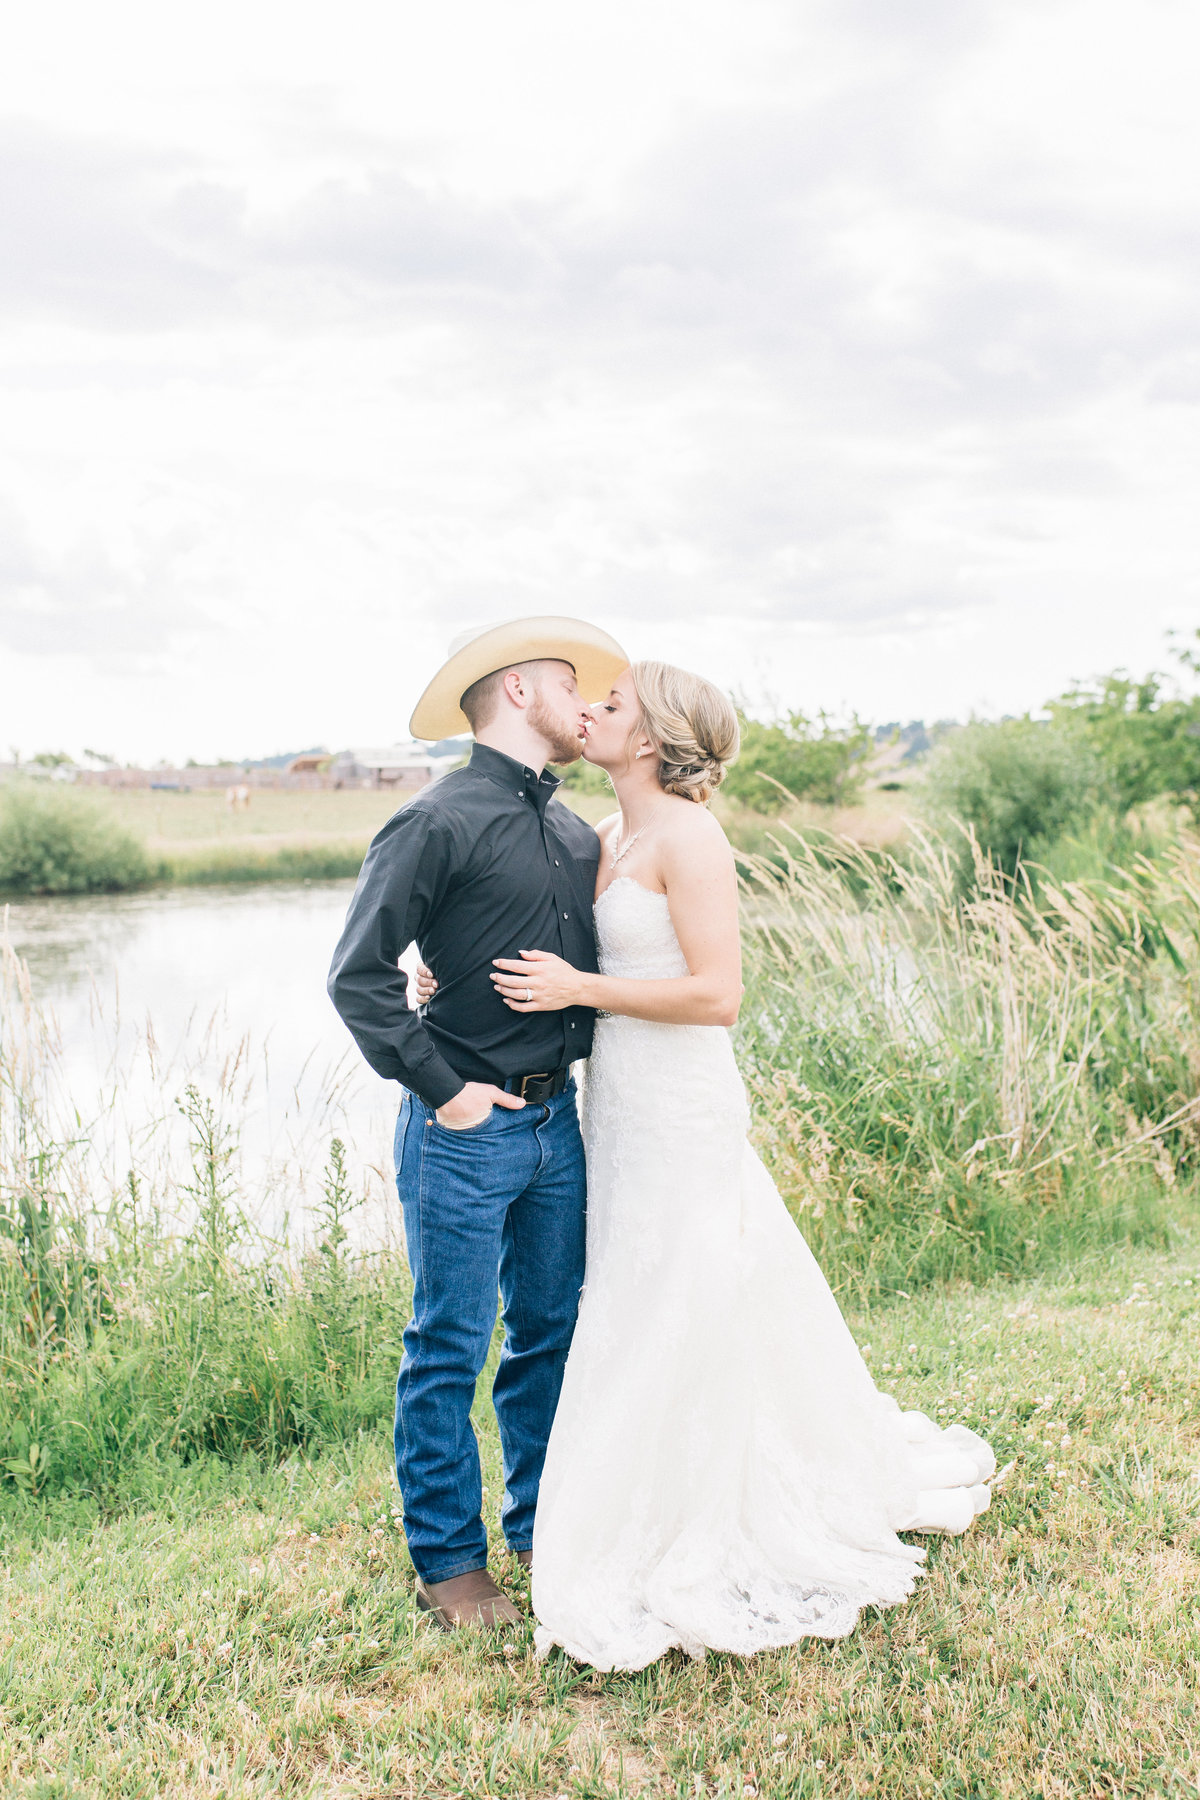 CaitlynKPhotography-253